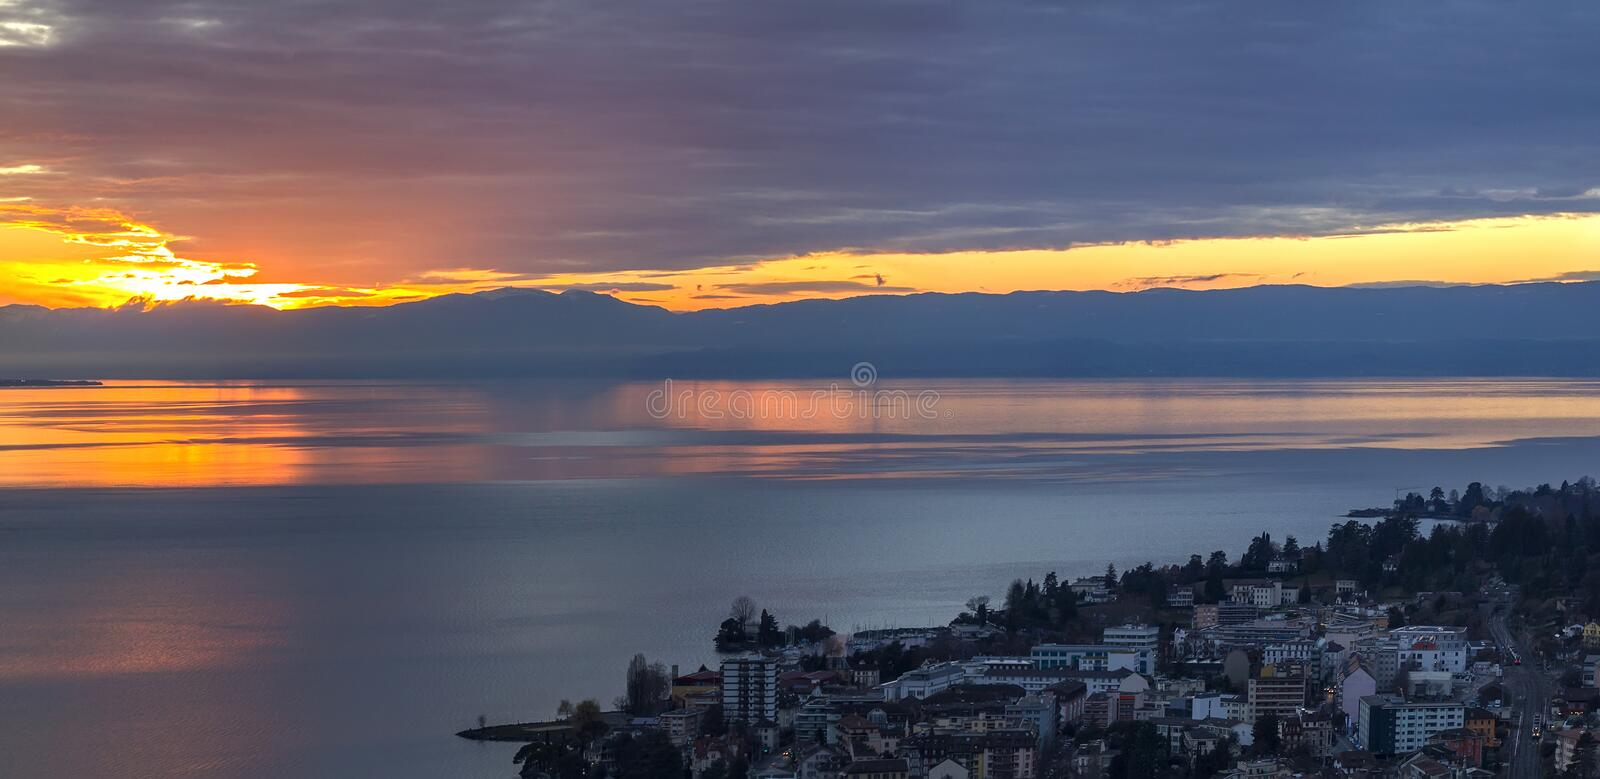 Scenic view of sunset over the Leman lake with yellow sky with clouds and Alps mountains in background, Montreux, Switzerland. stock photos